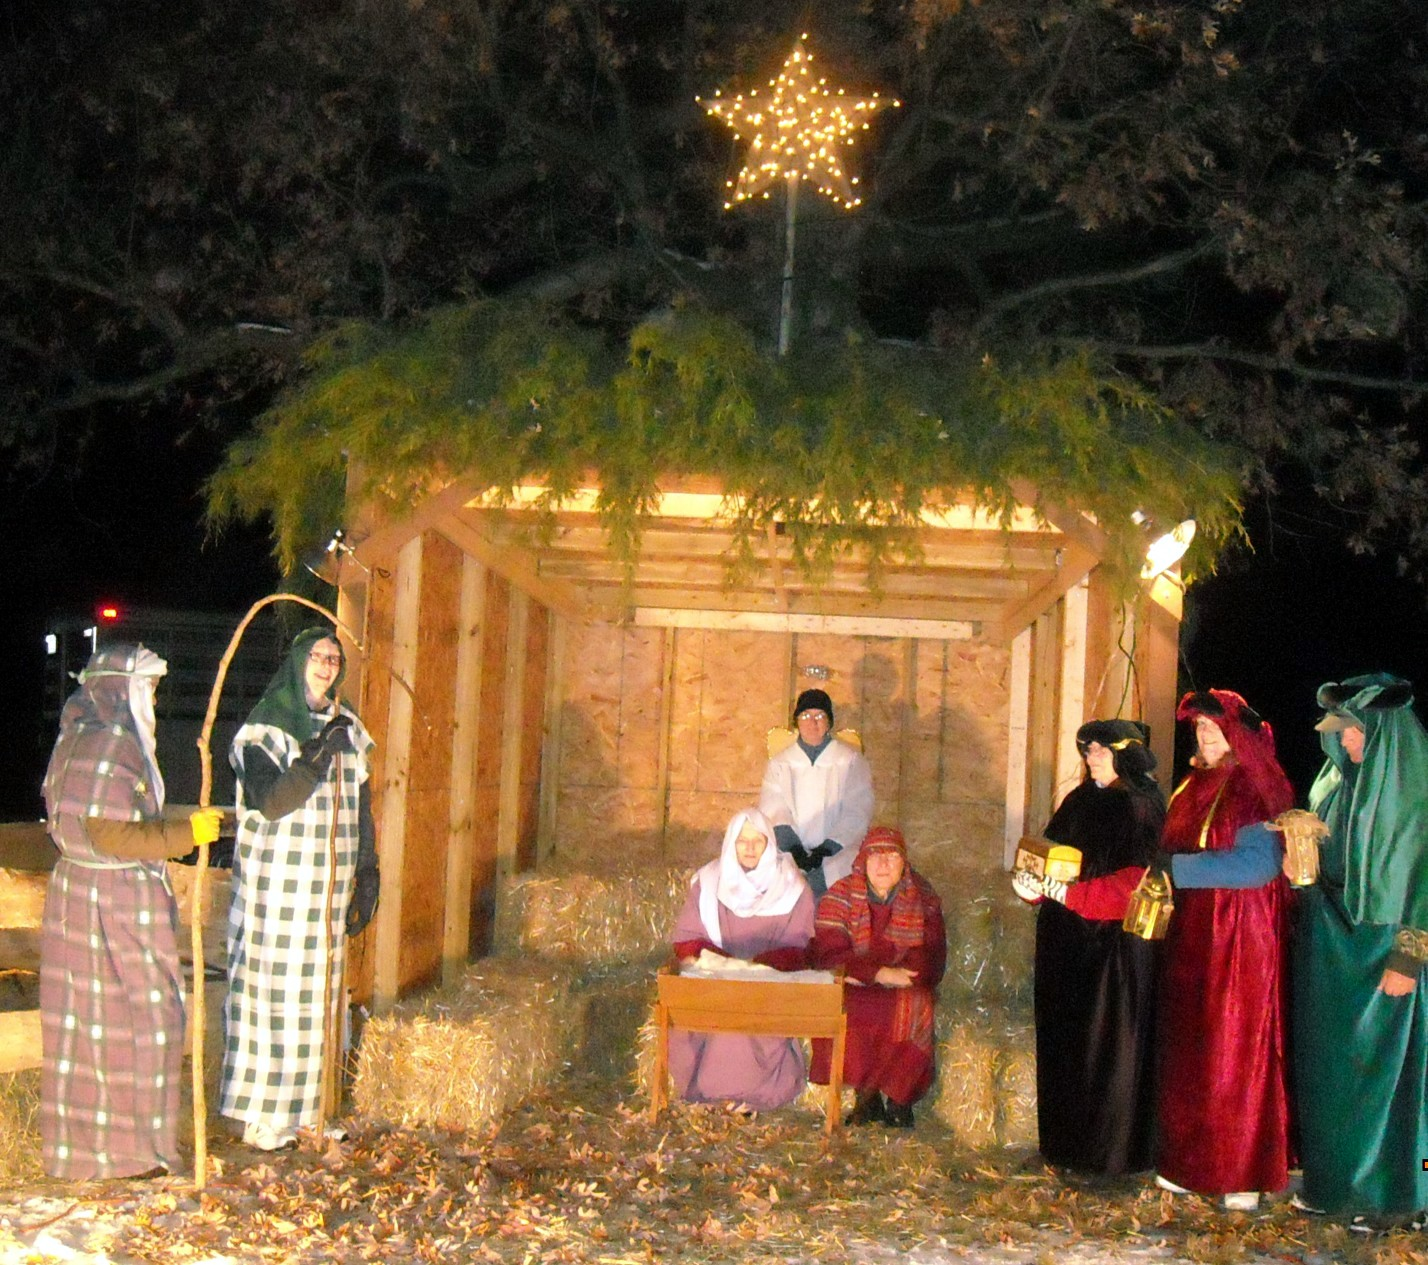 urbana church to display live nativity